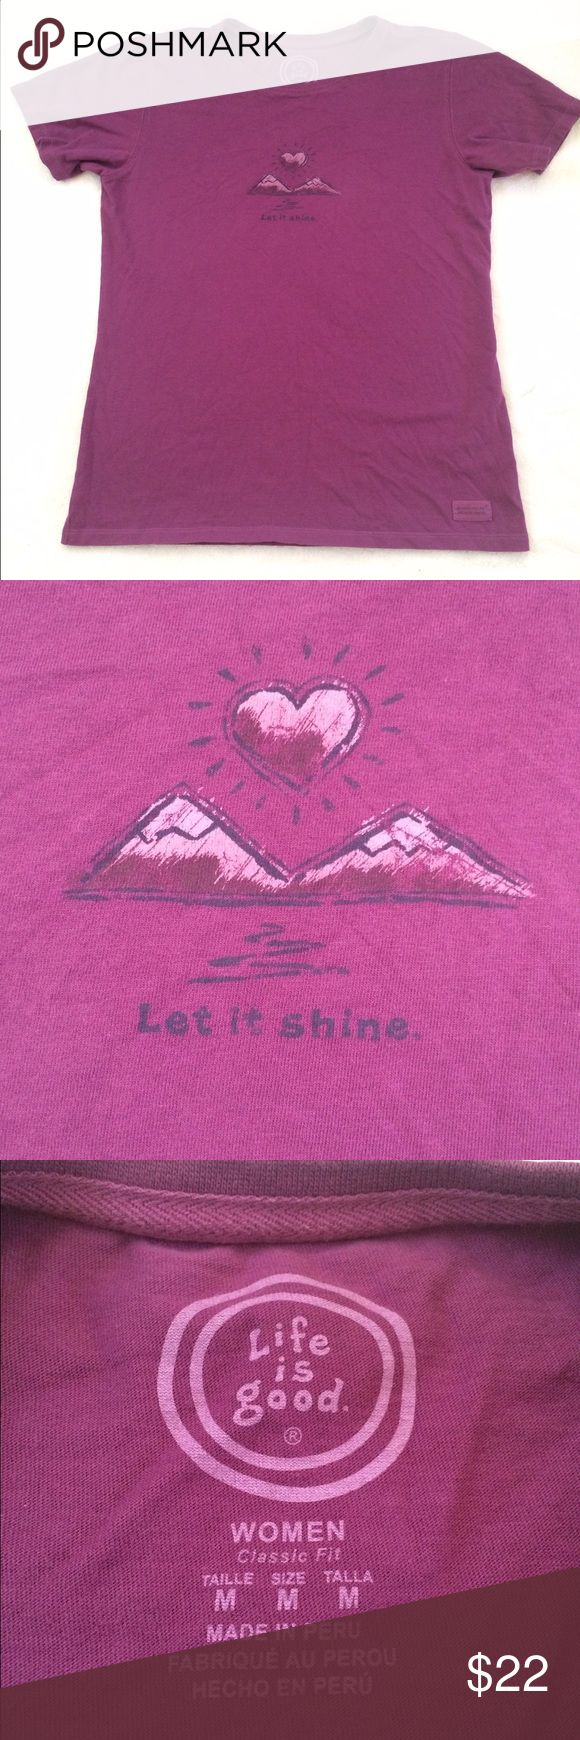 "Life is Good Let It Shine Perfect Plum Tee Shirt M Authentic Life is Good Women's short-sleeved Crusher T-shirt - ""Let It Shine"", in size Medium! Good condition.  No Rips Stains or Tears.  Comes from a smoke free home.  Made of soft 100% cotton, in Peru.